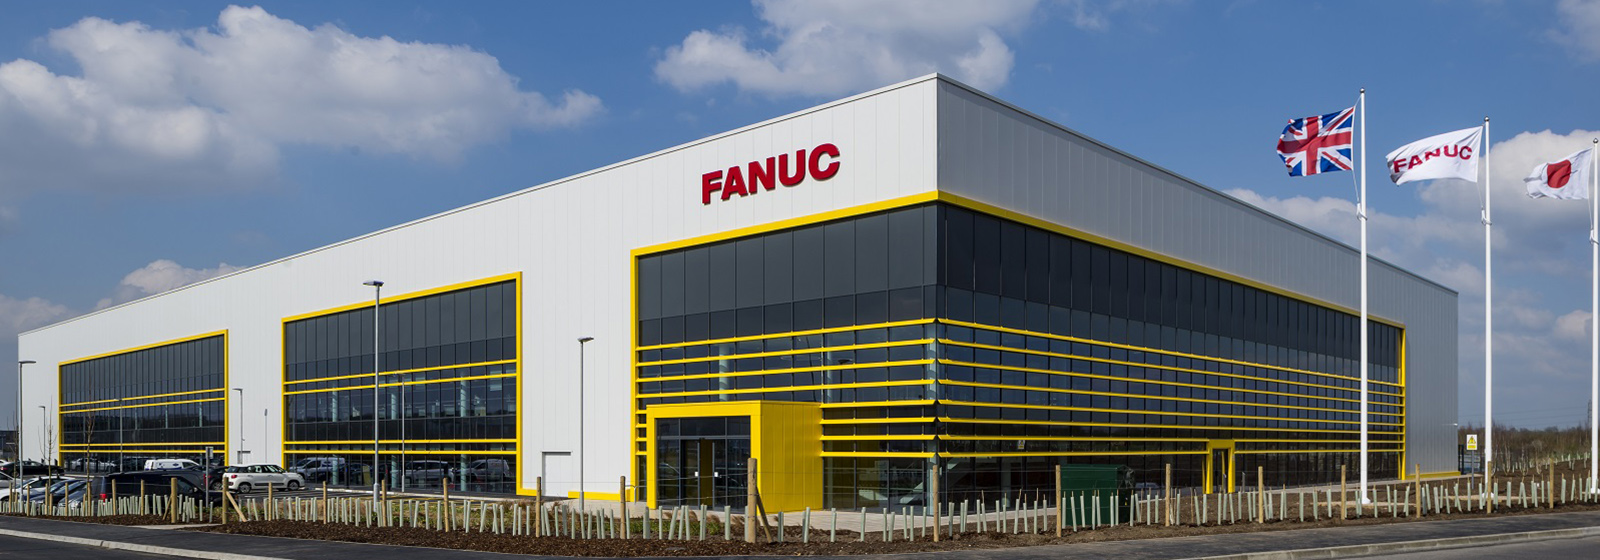 Fanuc UK Limited